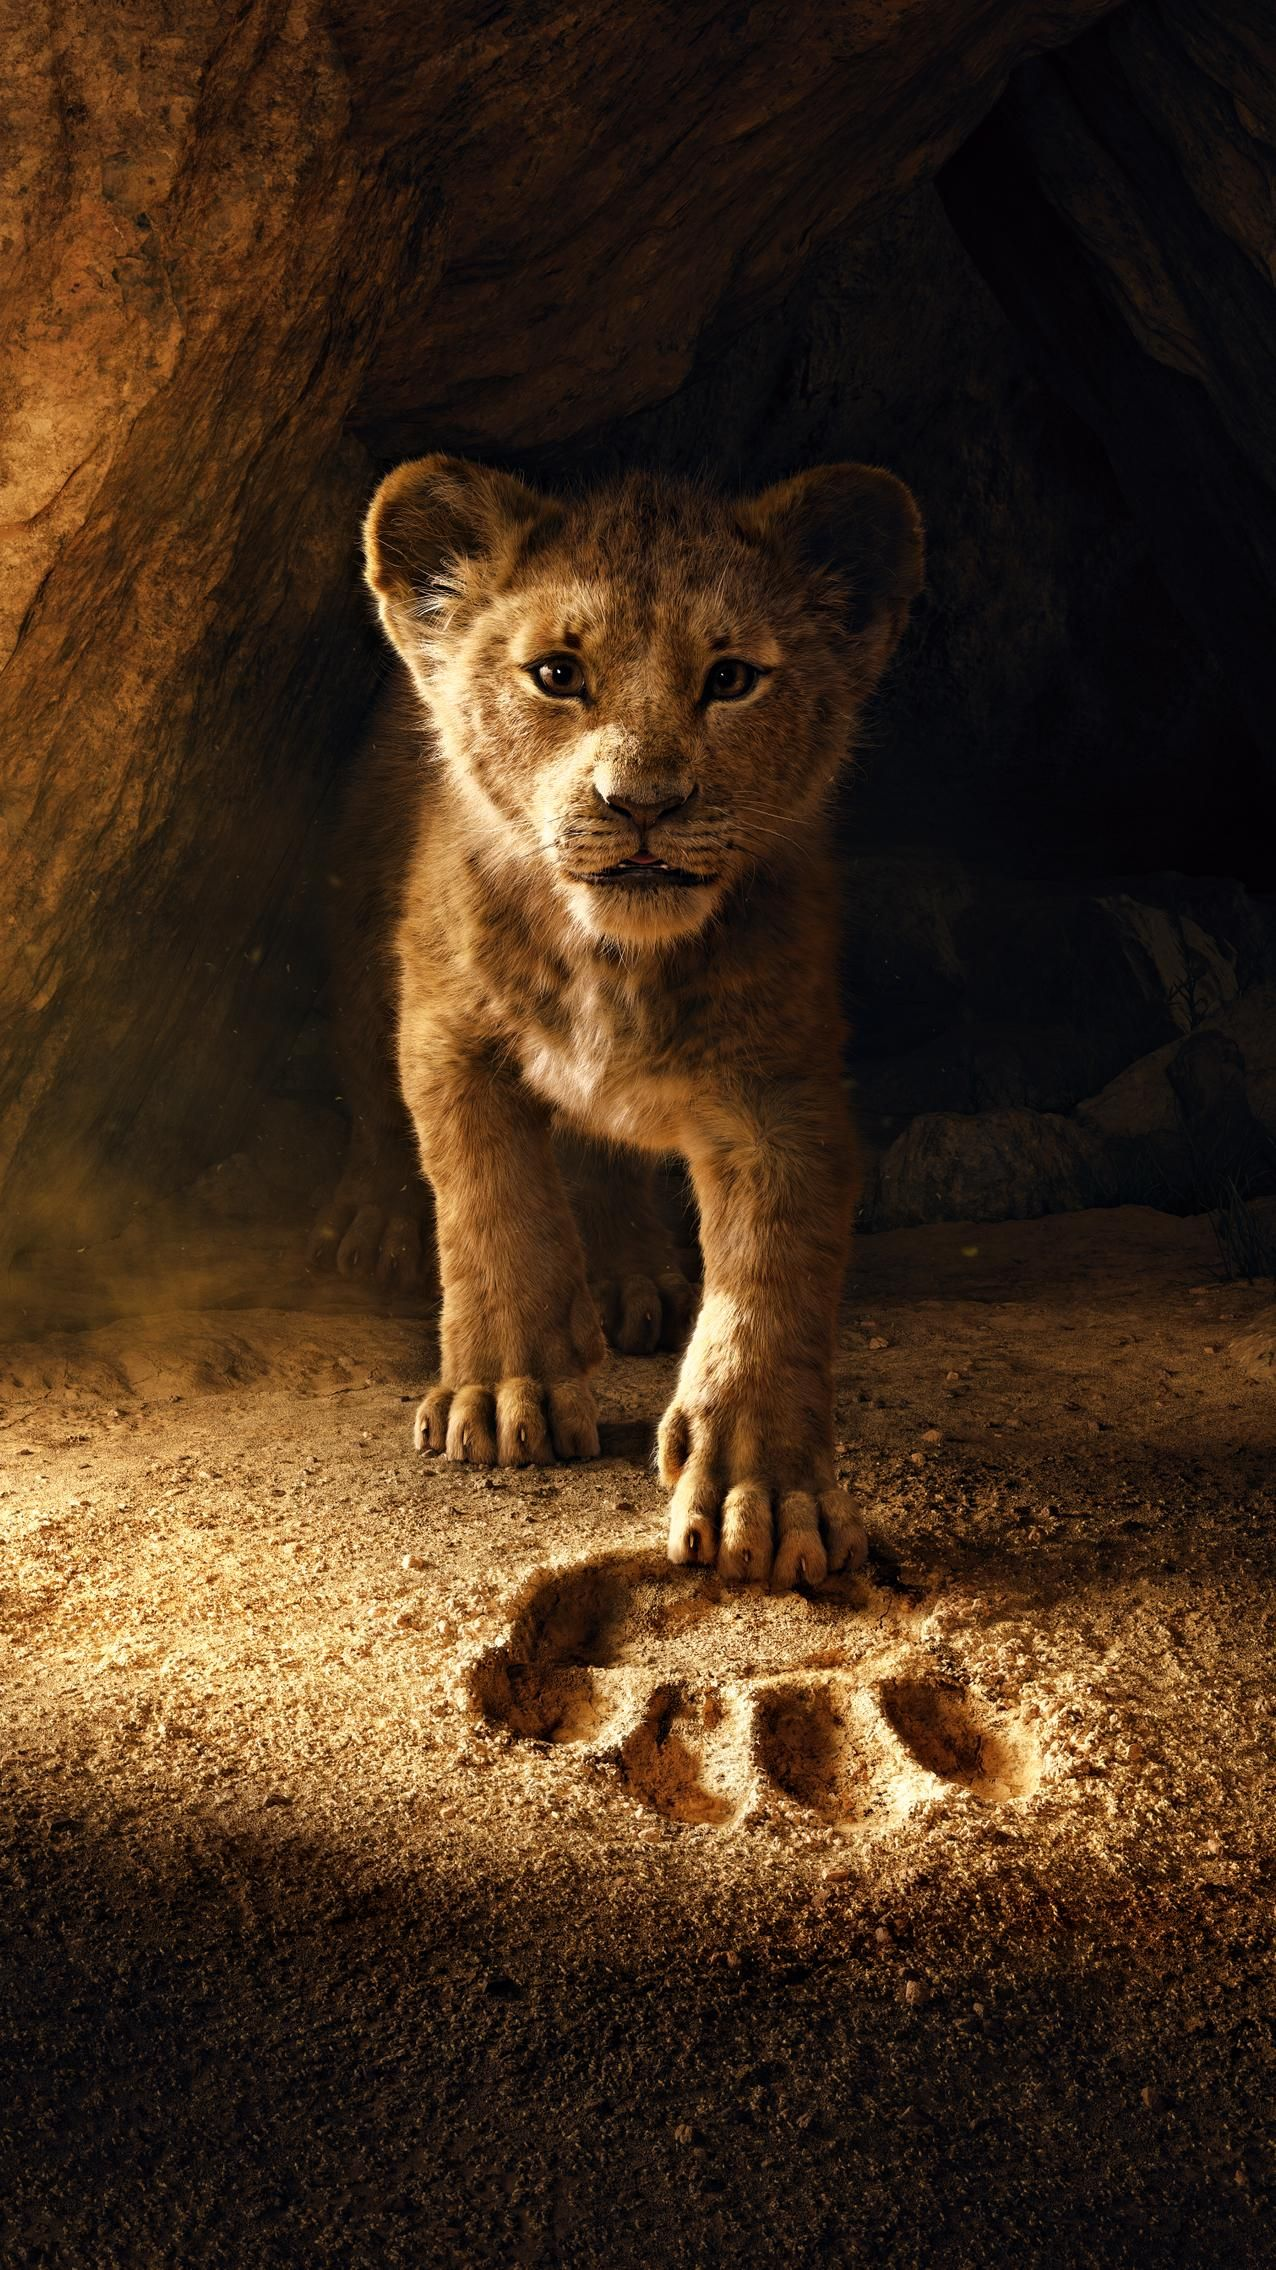 The Lion King 2019 Phone Wallpaper Moviemania Lion King Pictures Lion Wallpaper Lion King Movie